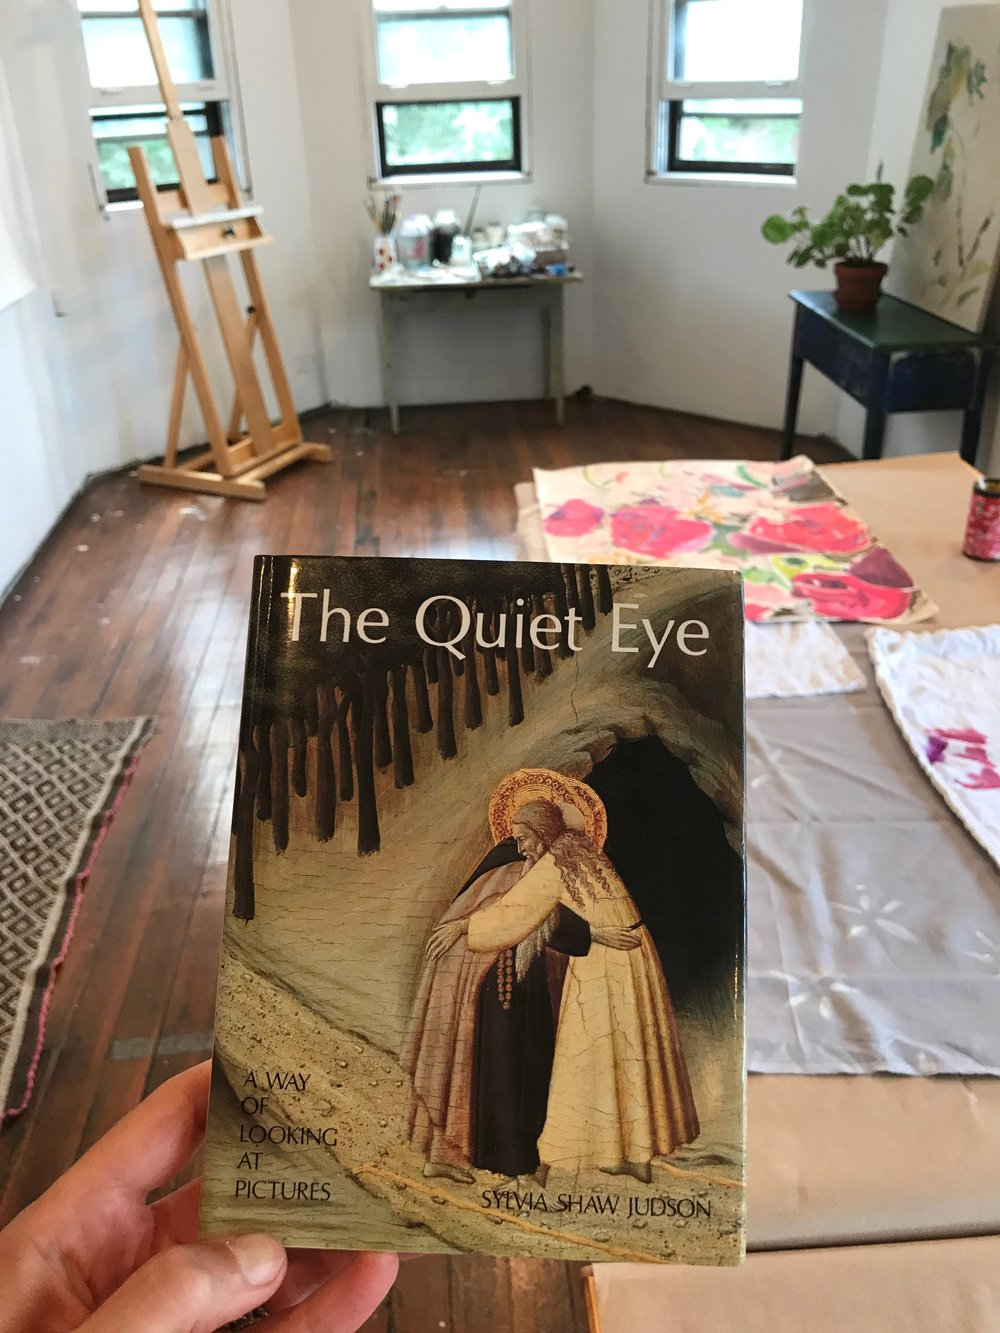 The Quiet Eye  has a permanent home in my studio.